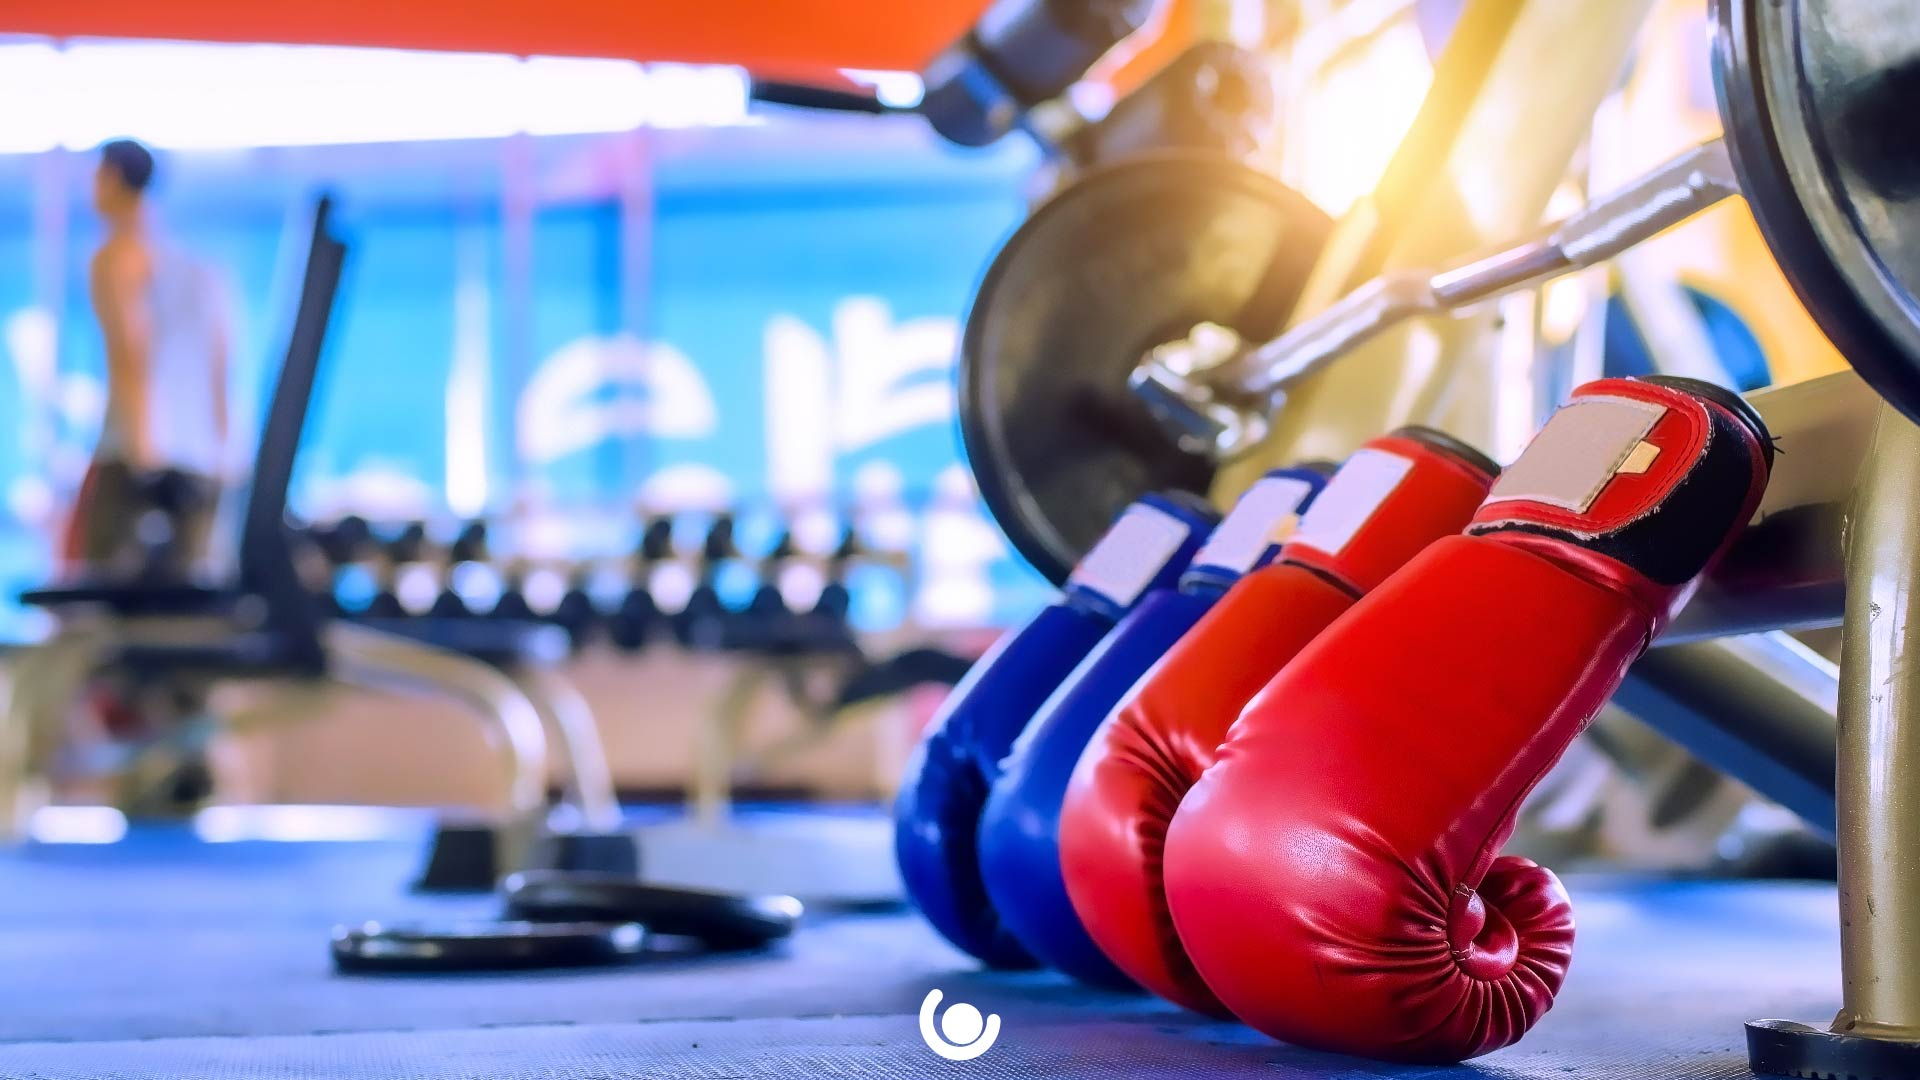 CPDs-That-Boost-Your-PT-Career-gym-boxing-01.jpg